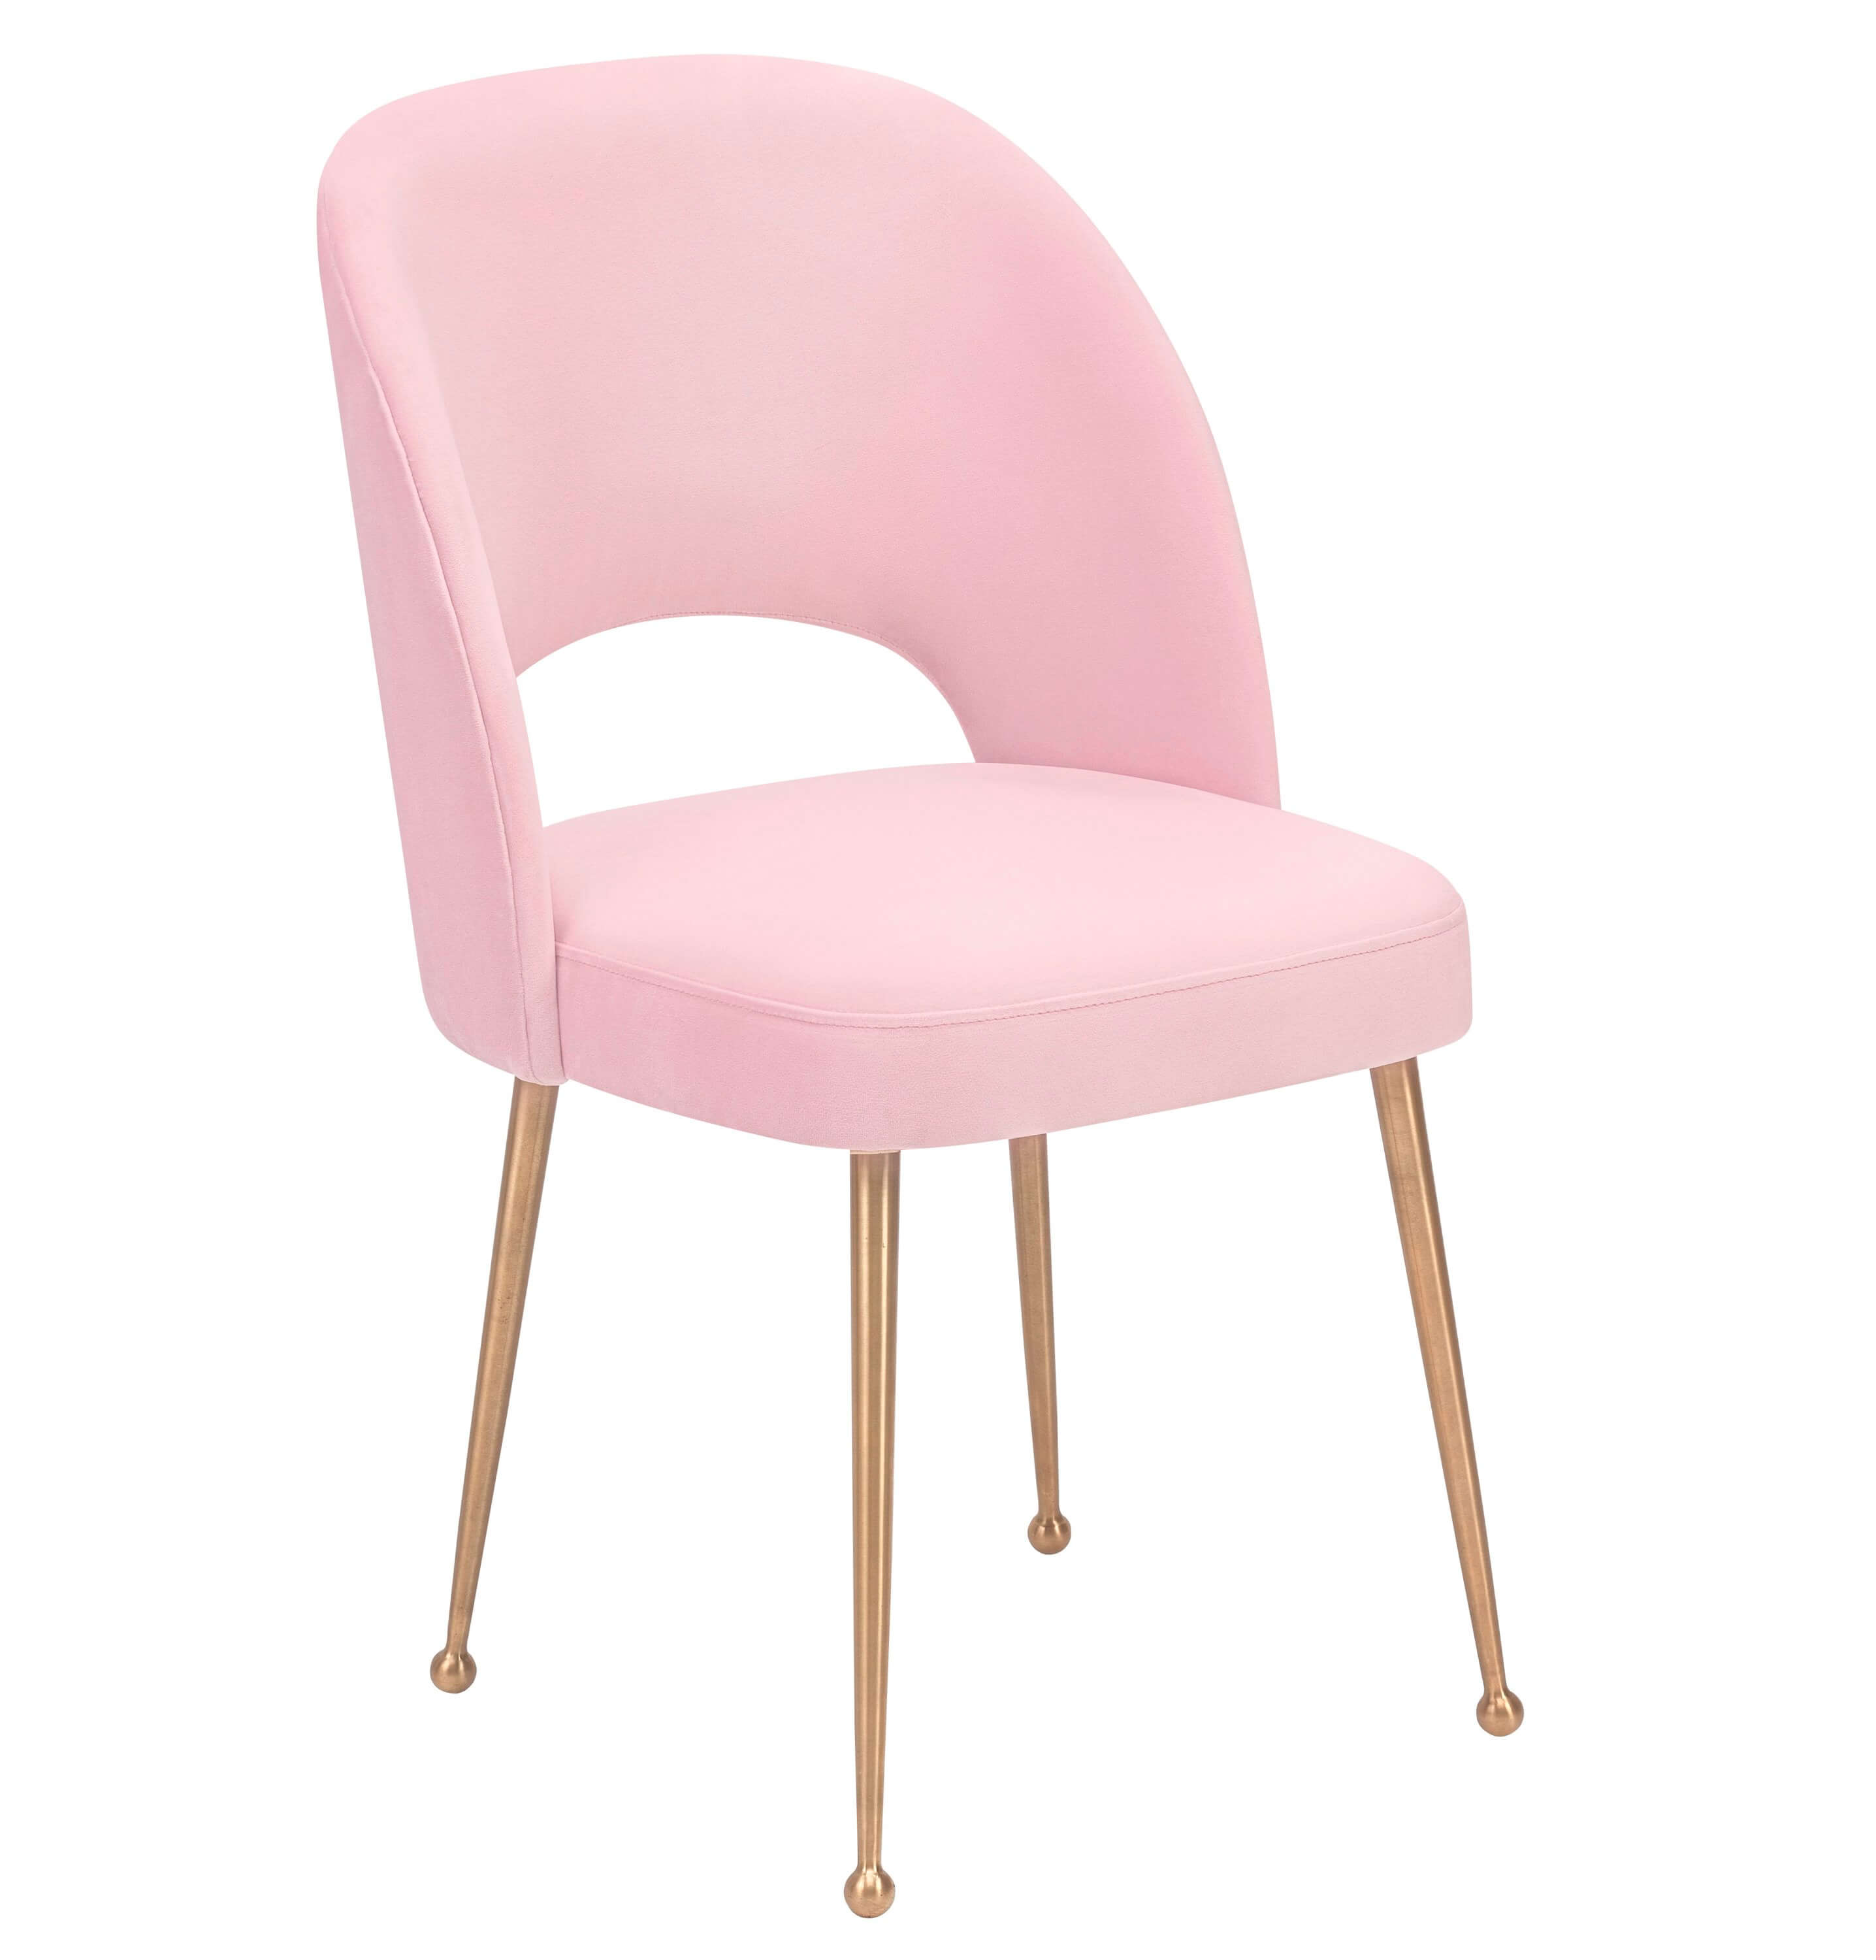 Swell Blush Velvet Chair, , hi-res